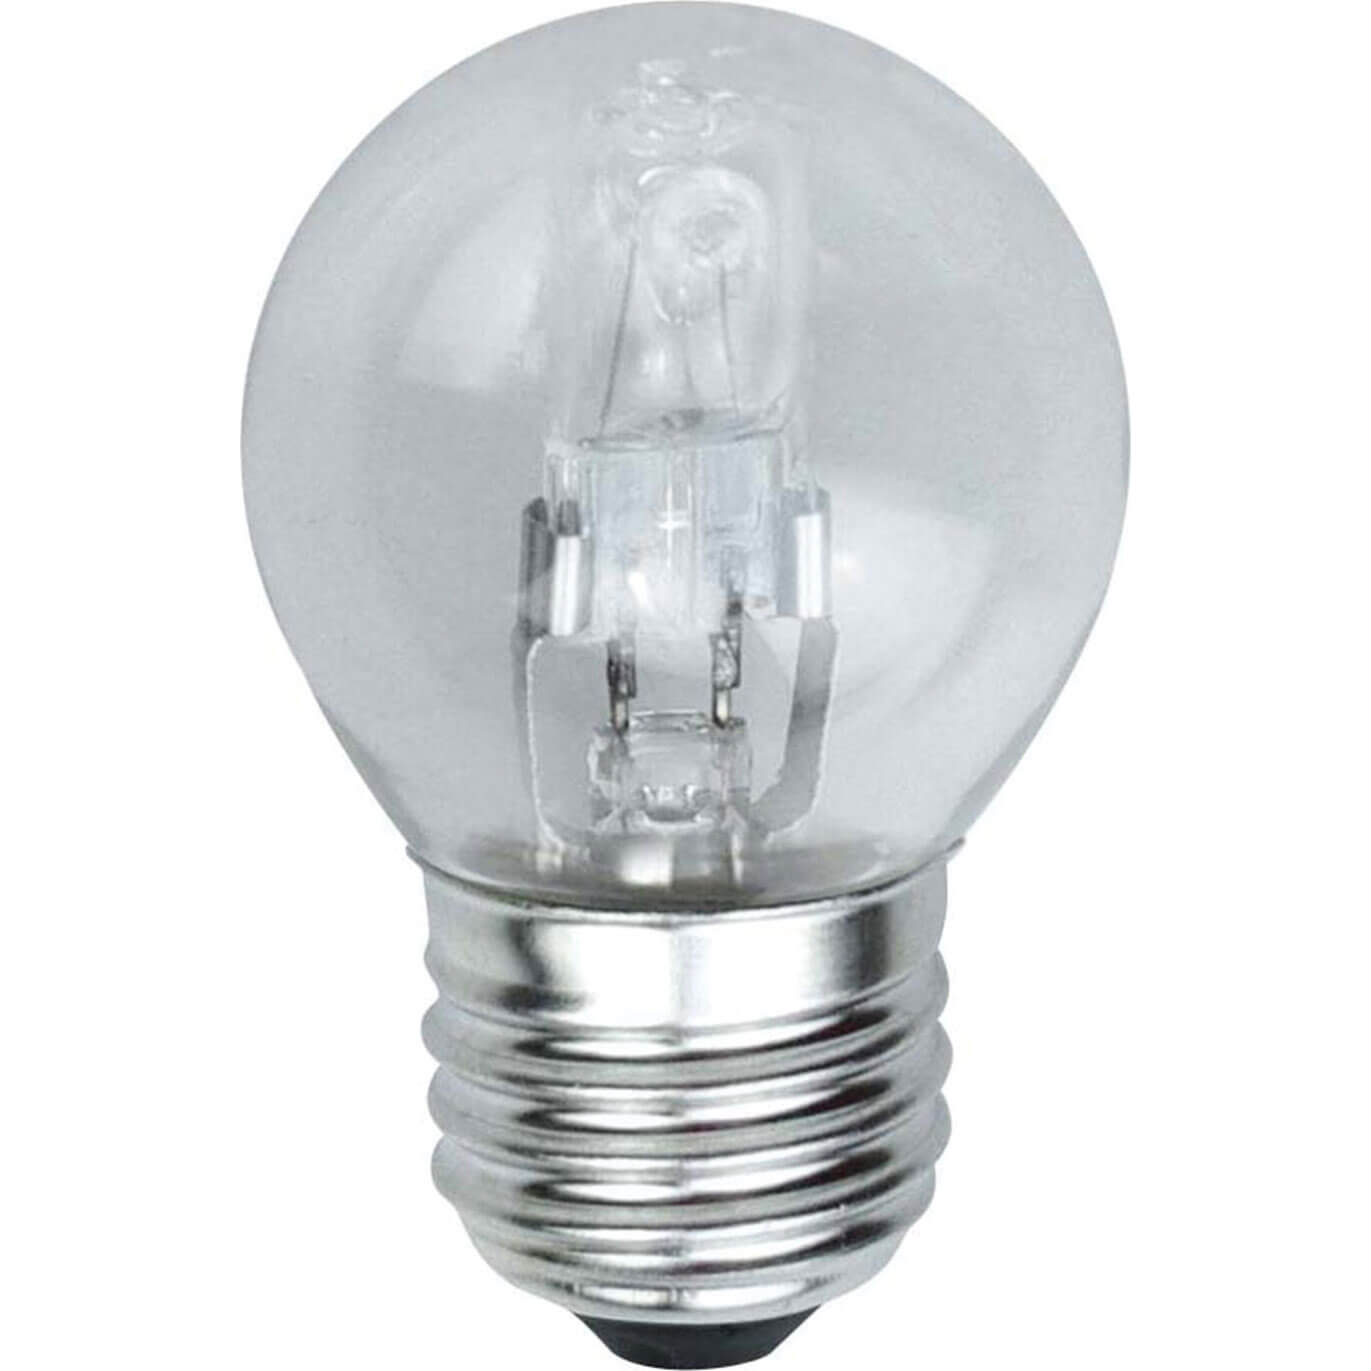 Image of Eveready Energy Save G45 Halogen Golf Bulb ES / E27 Edison Screw 42w